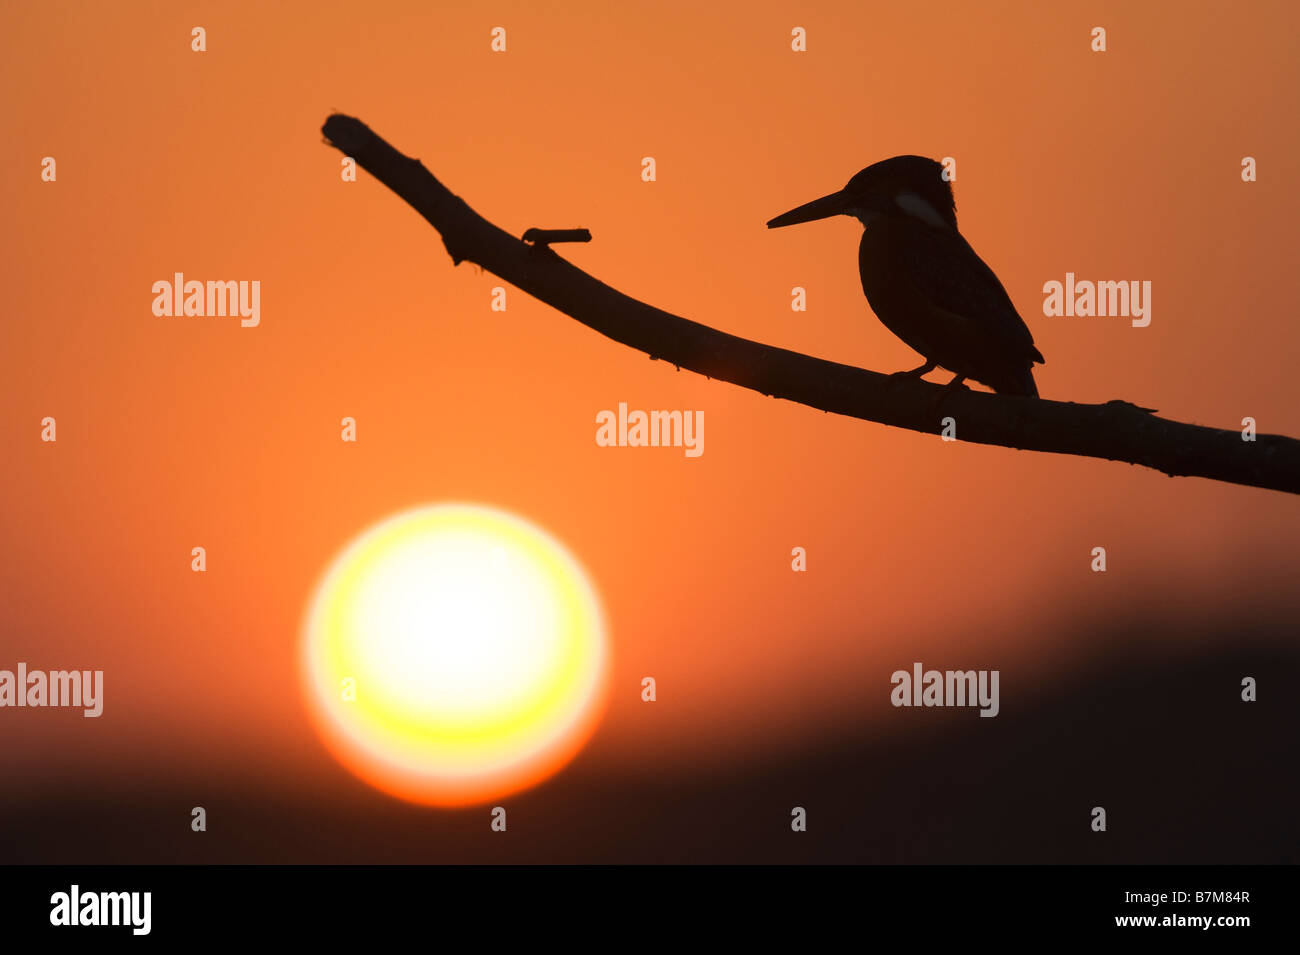 silhouette of a european kingfisher perched on a stick at sunset over a